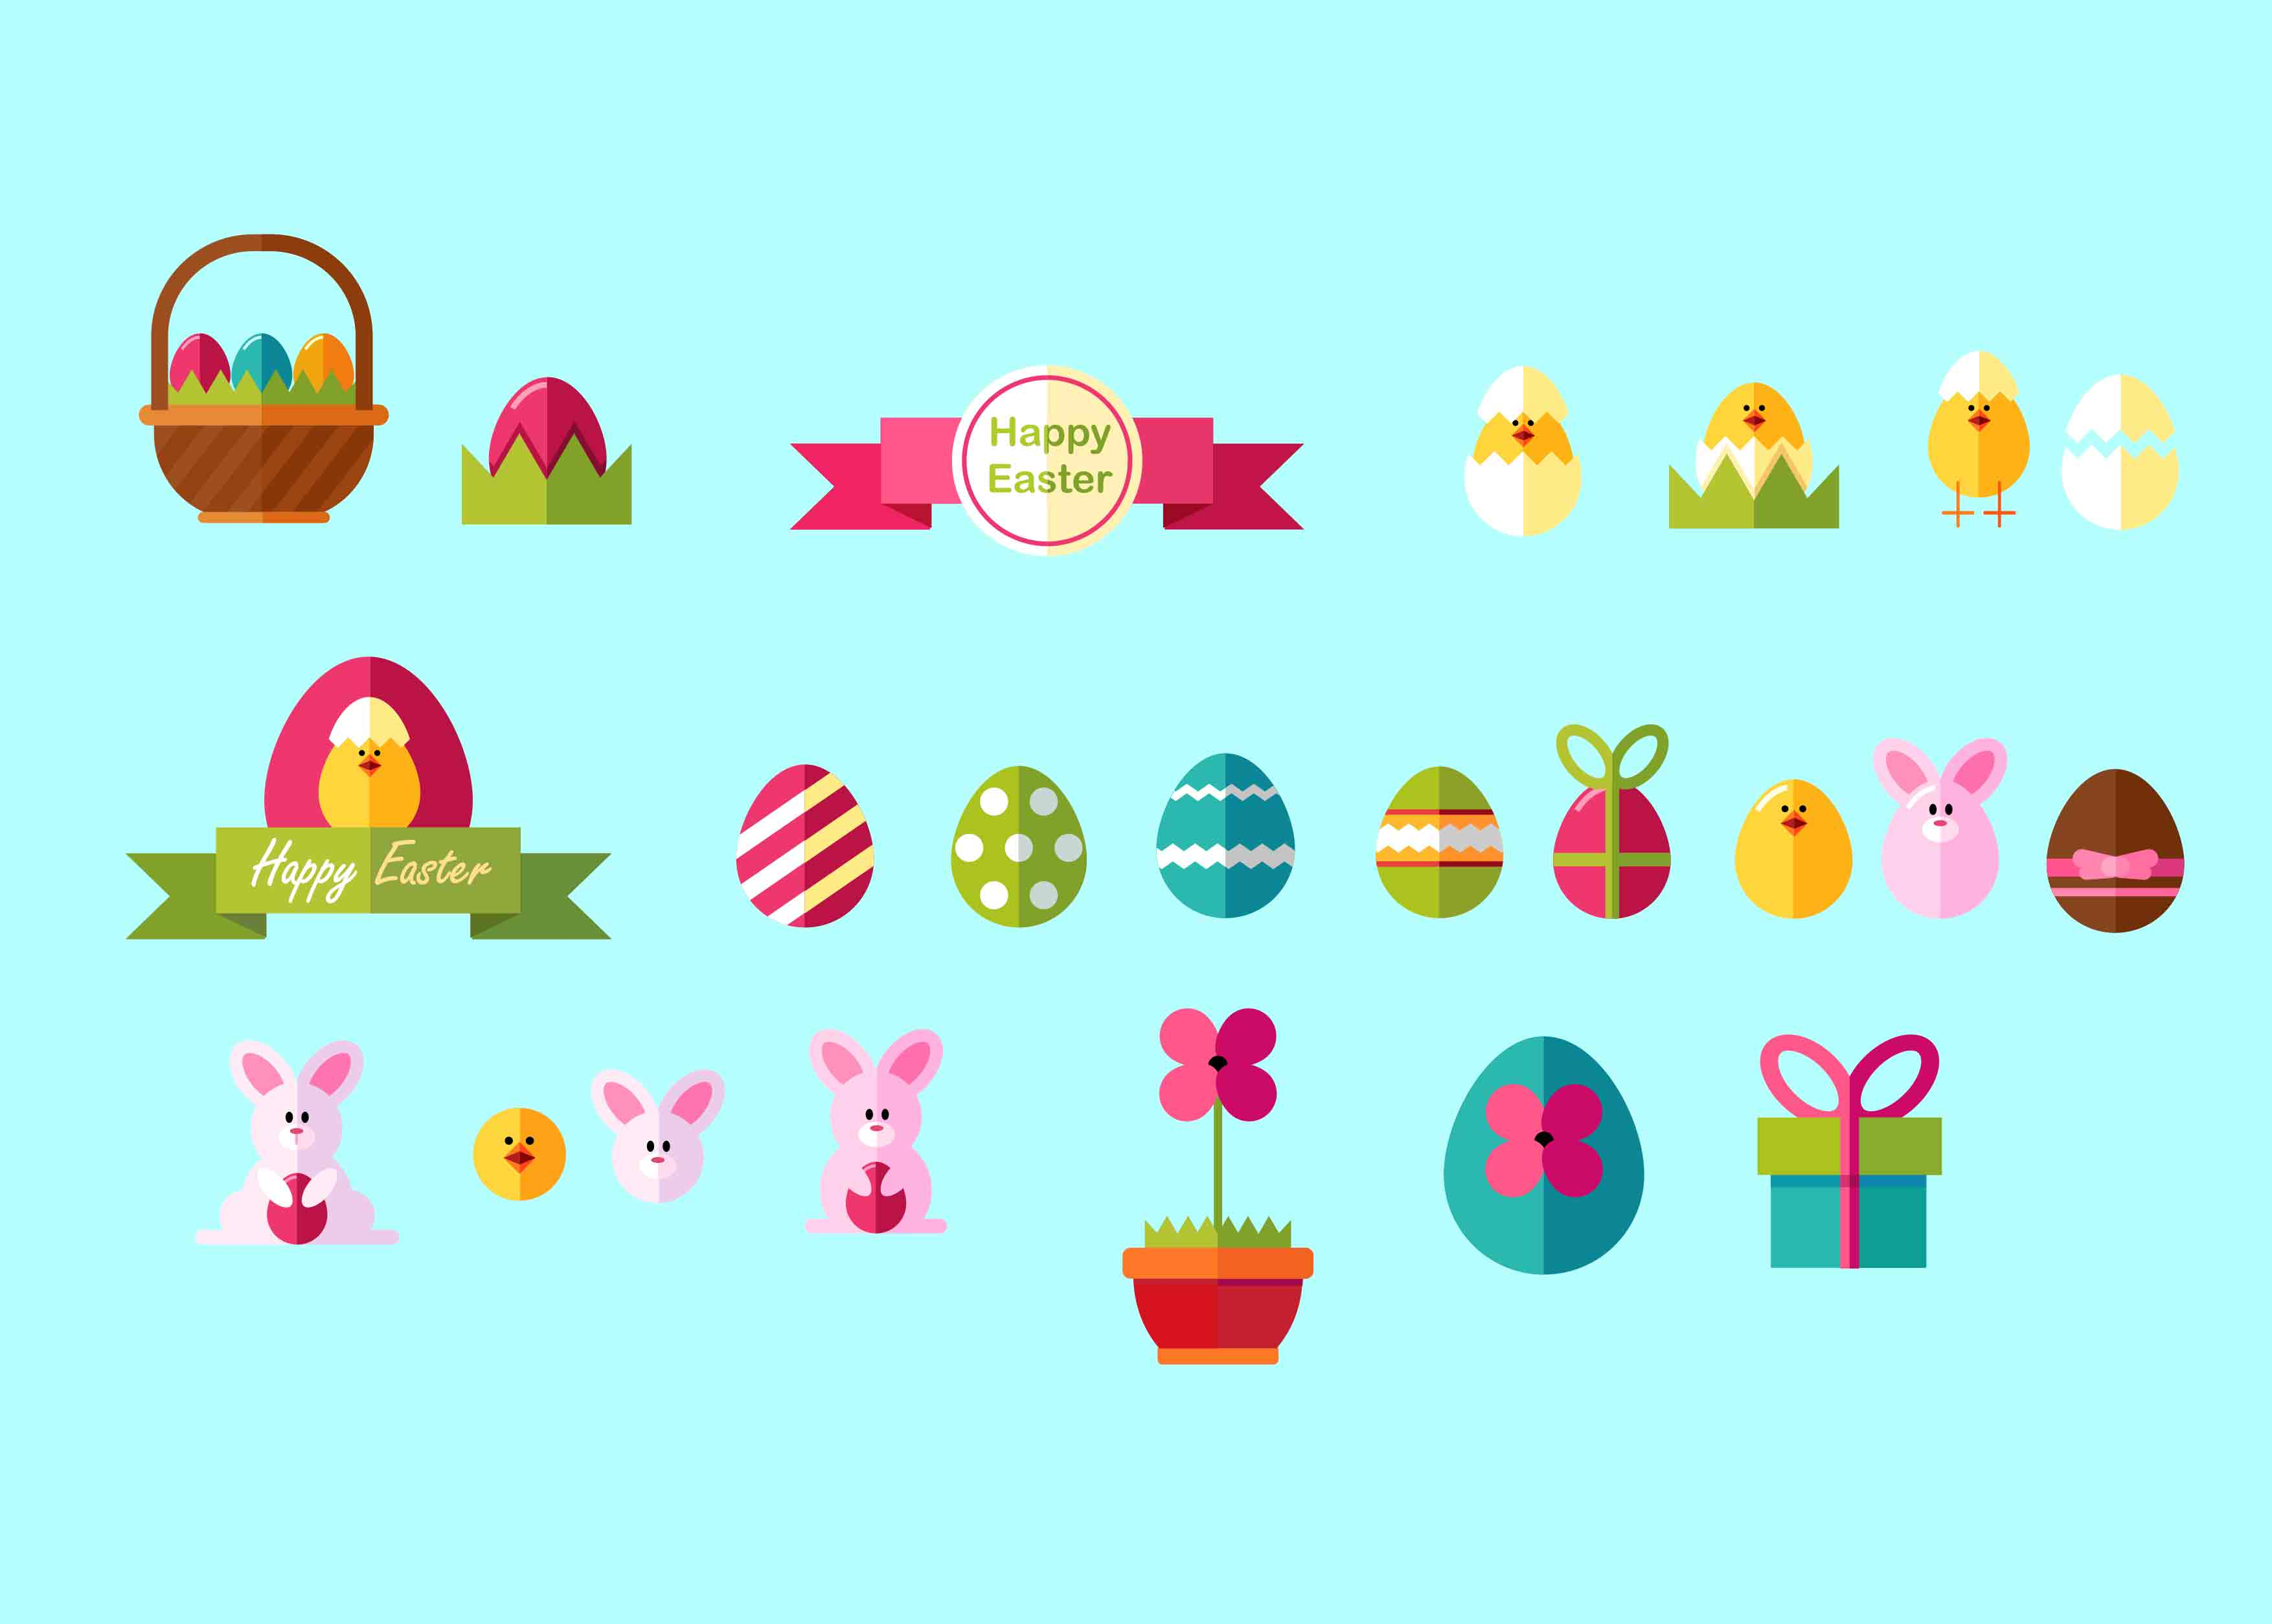 Happy Easter Images Clip Art - Just $15 For a Bundle - 22 vectorstock easter